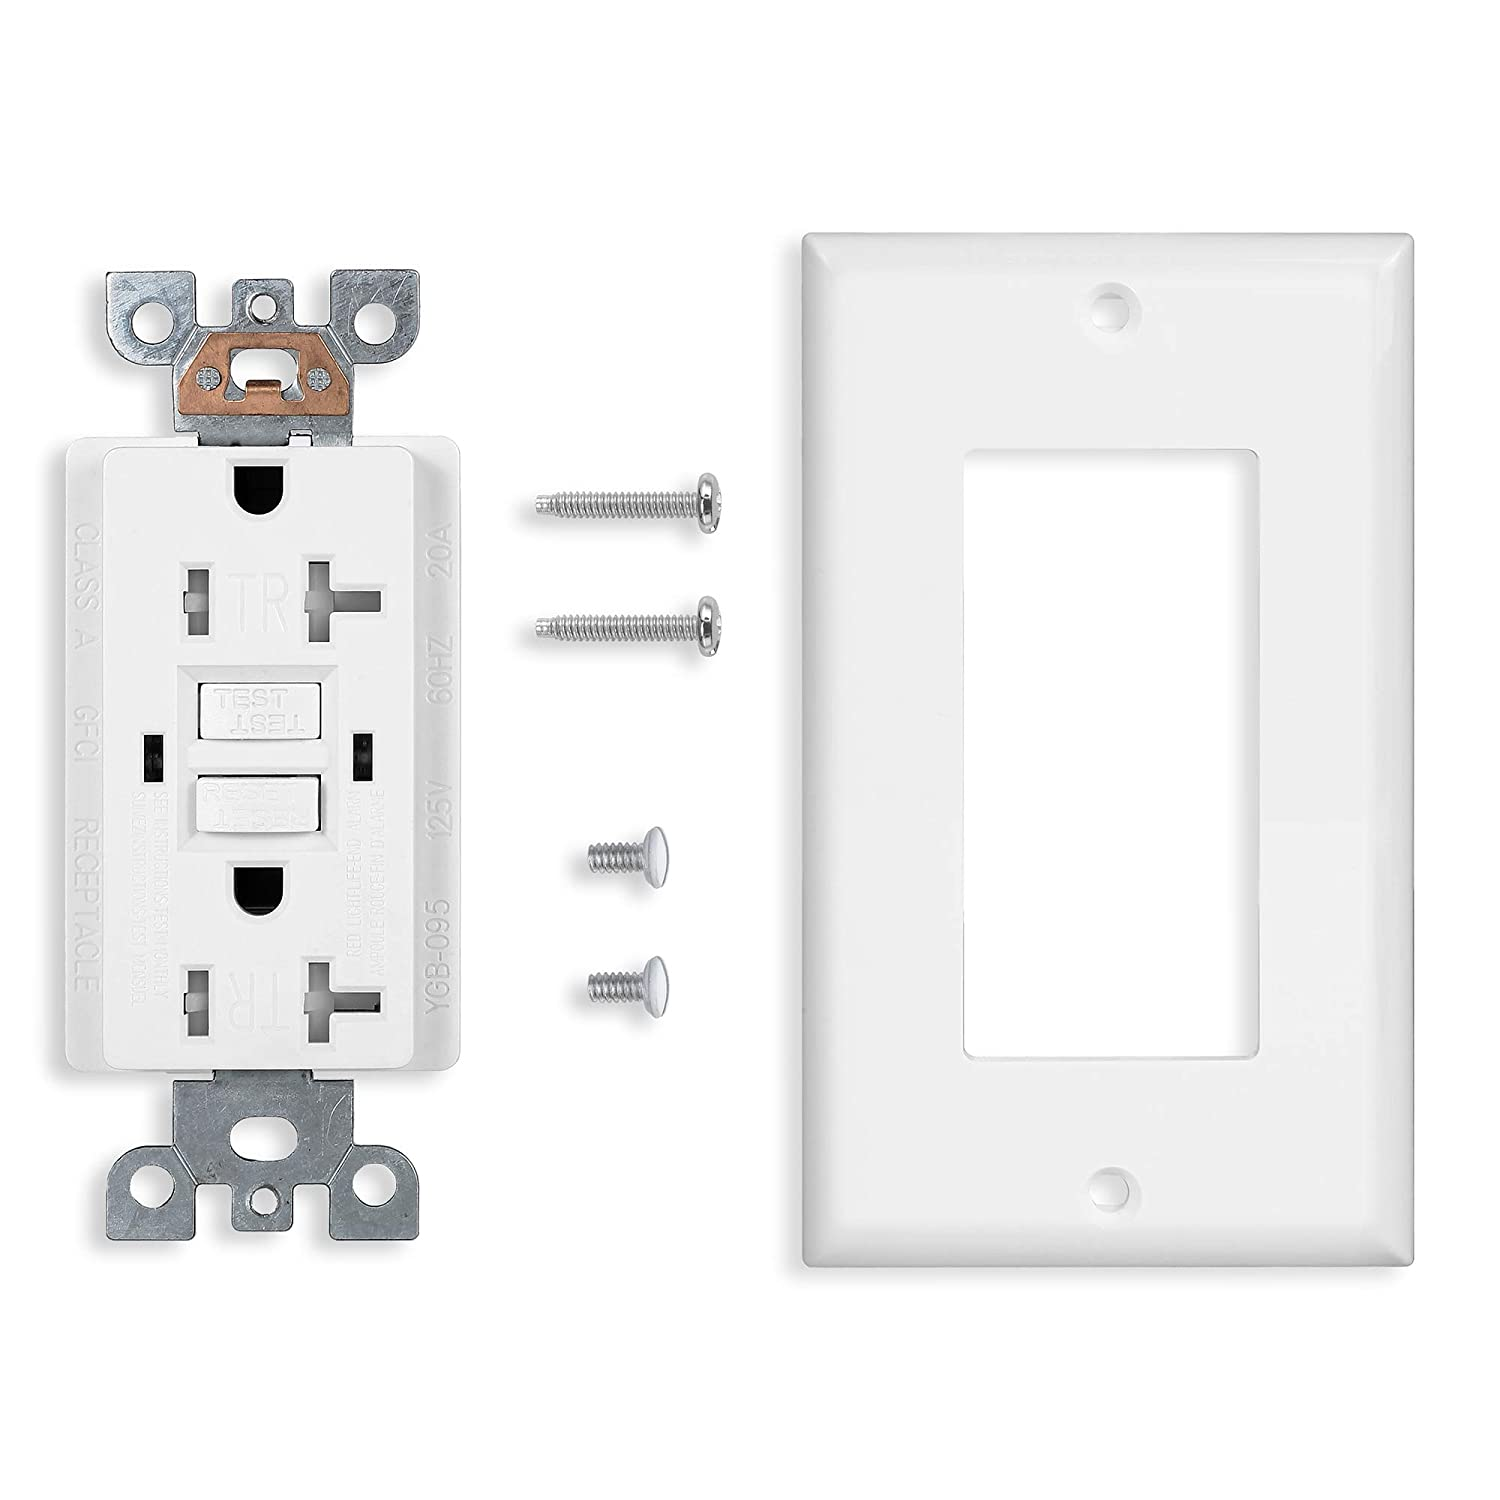 cUL Listed GFCI Duplex Outlet Receptacle Tamper Resistant 20-Amp//125-Volt 1 Pack Self-Test Function with LED Indicator White UL Listed Wall Plate and Screws Included